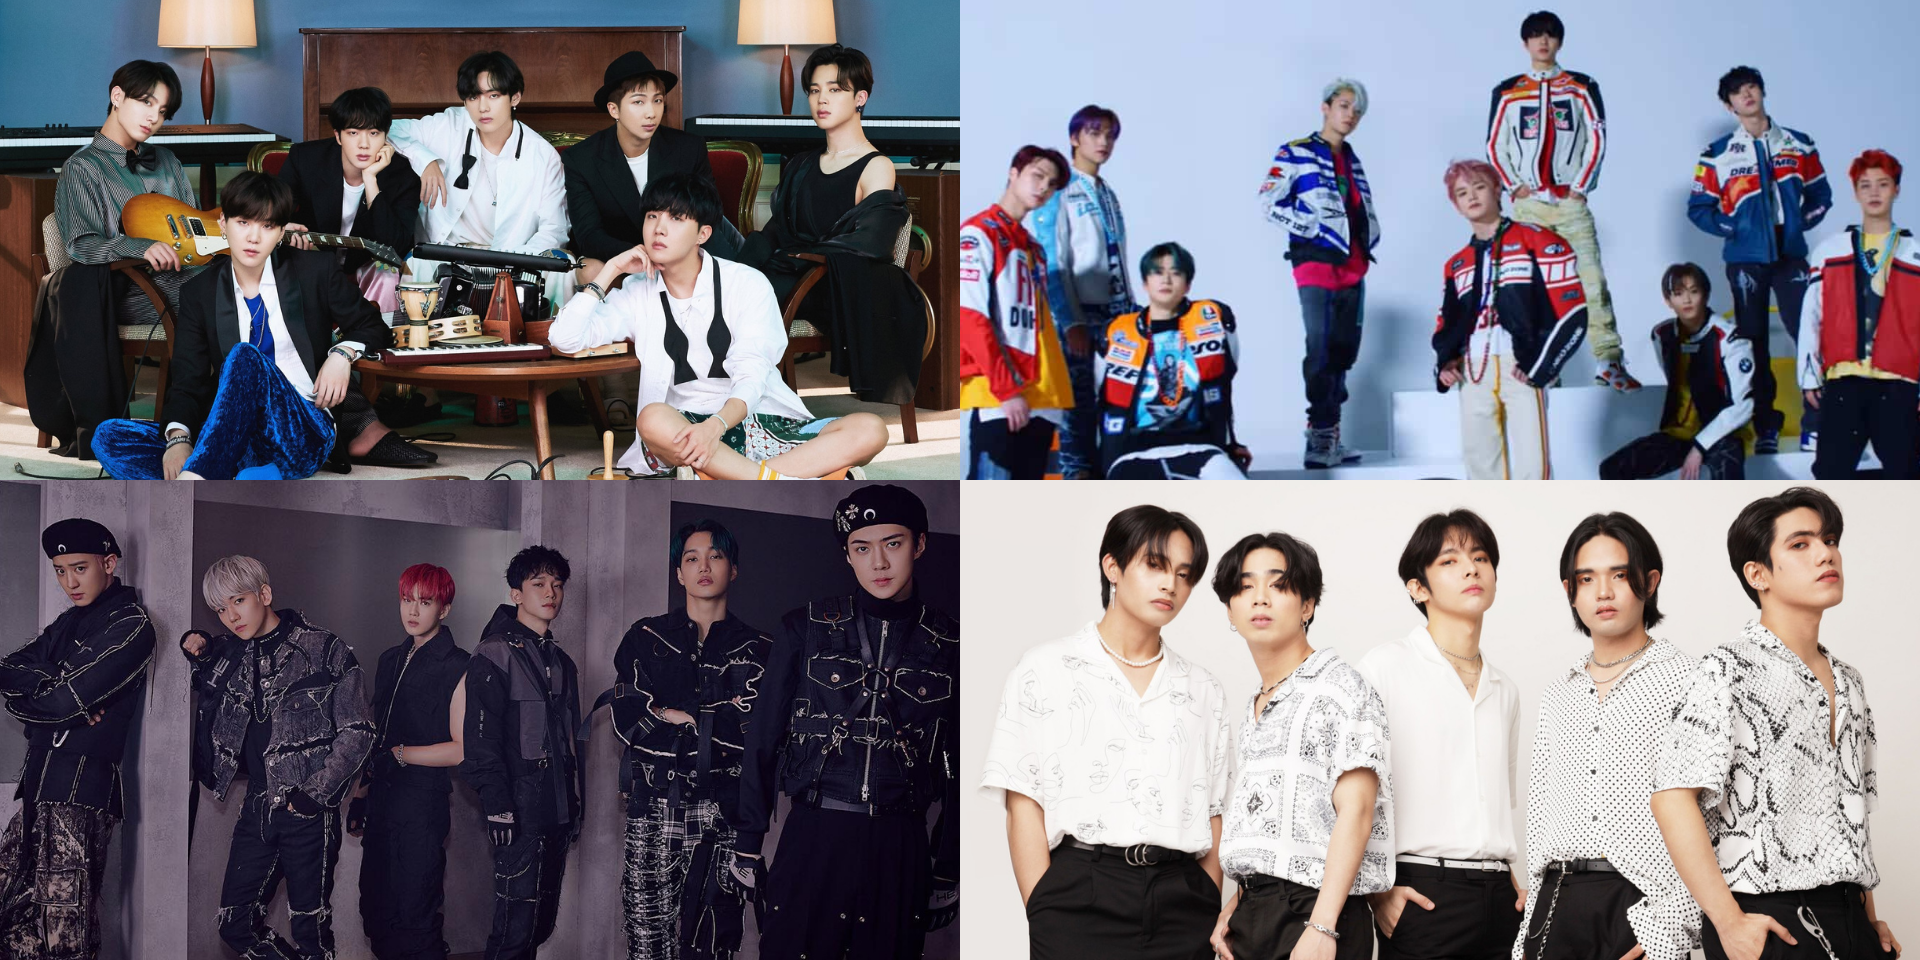 BTS, EXO, NCT127, SB19, and more land on Billboard's Top Social 50 Artists of 2020